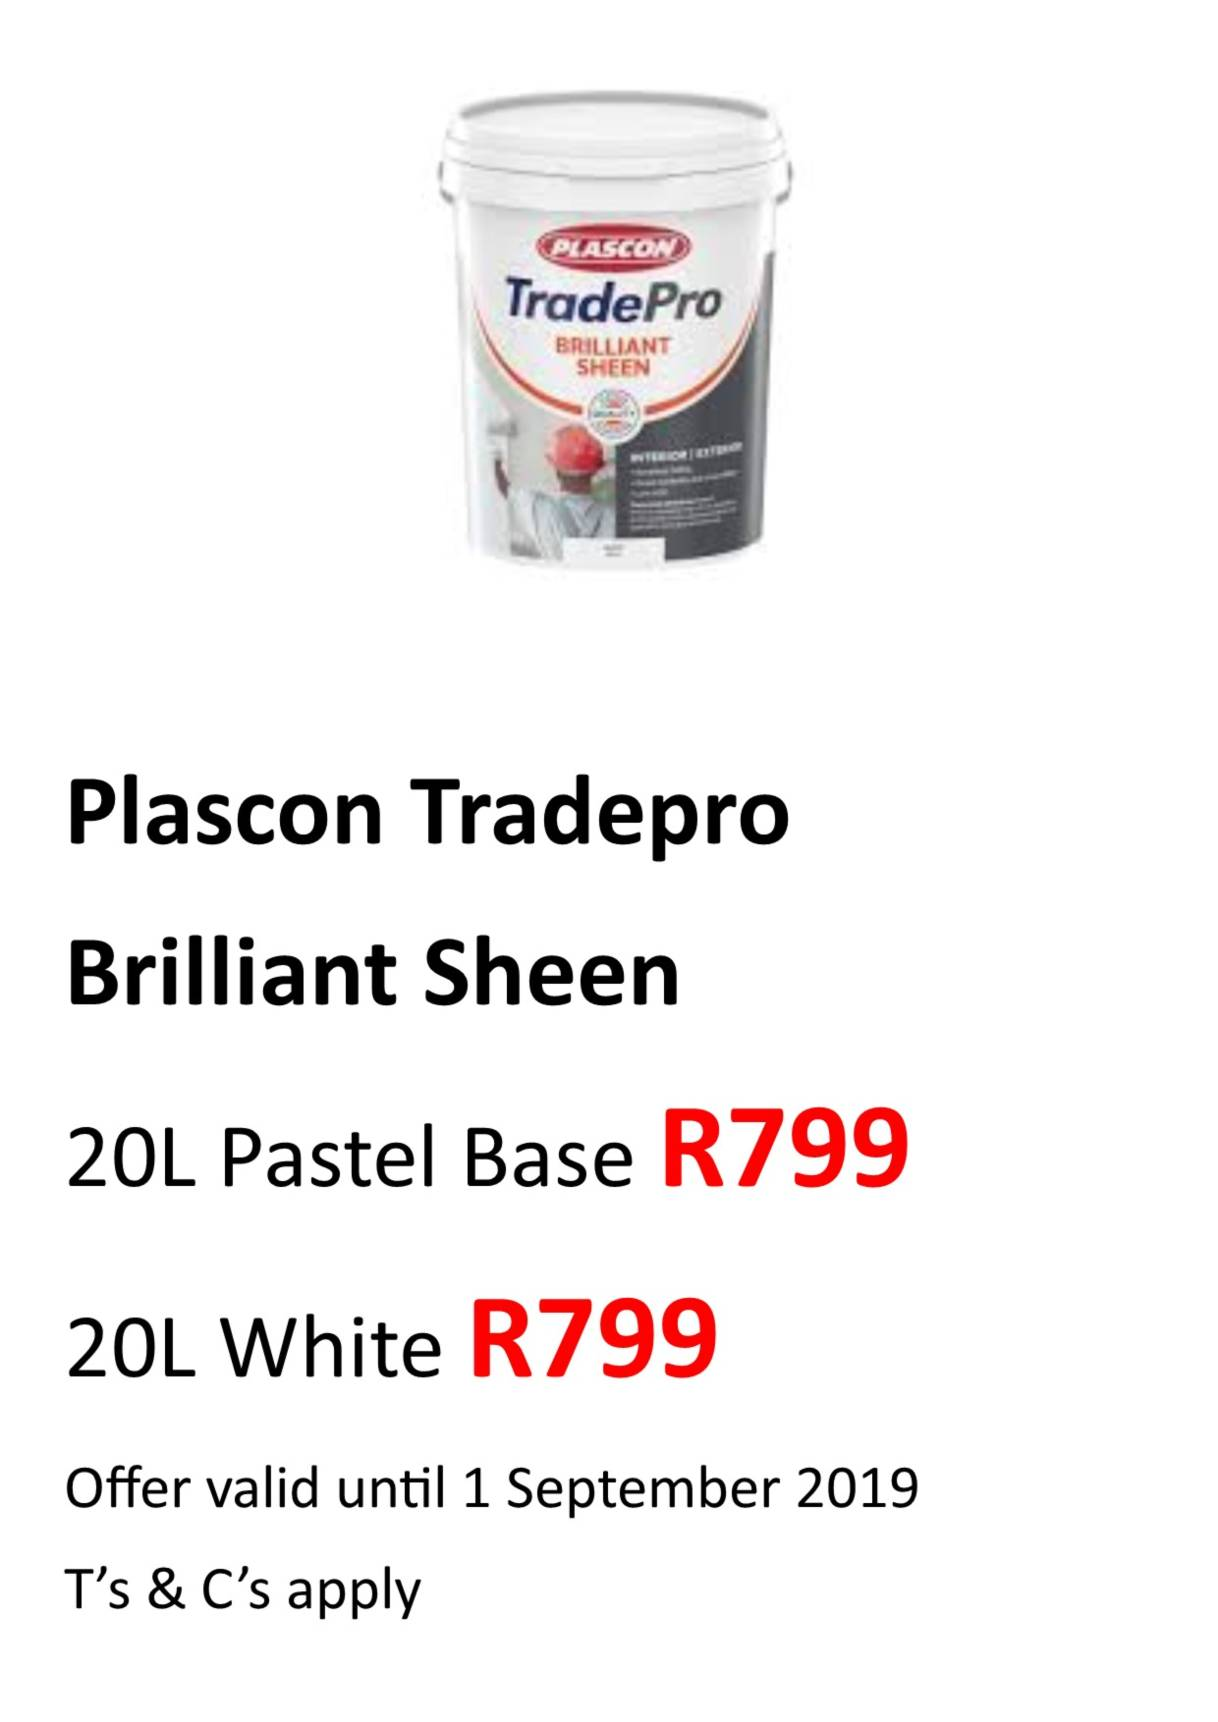 Tradepro 20 Brilliant sheen Aug 2019